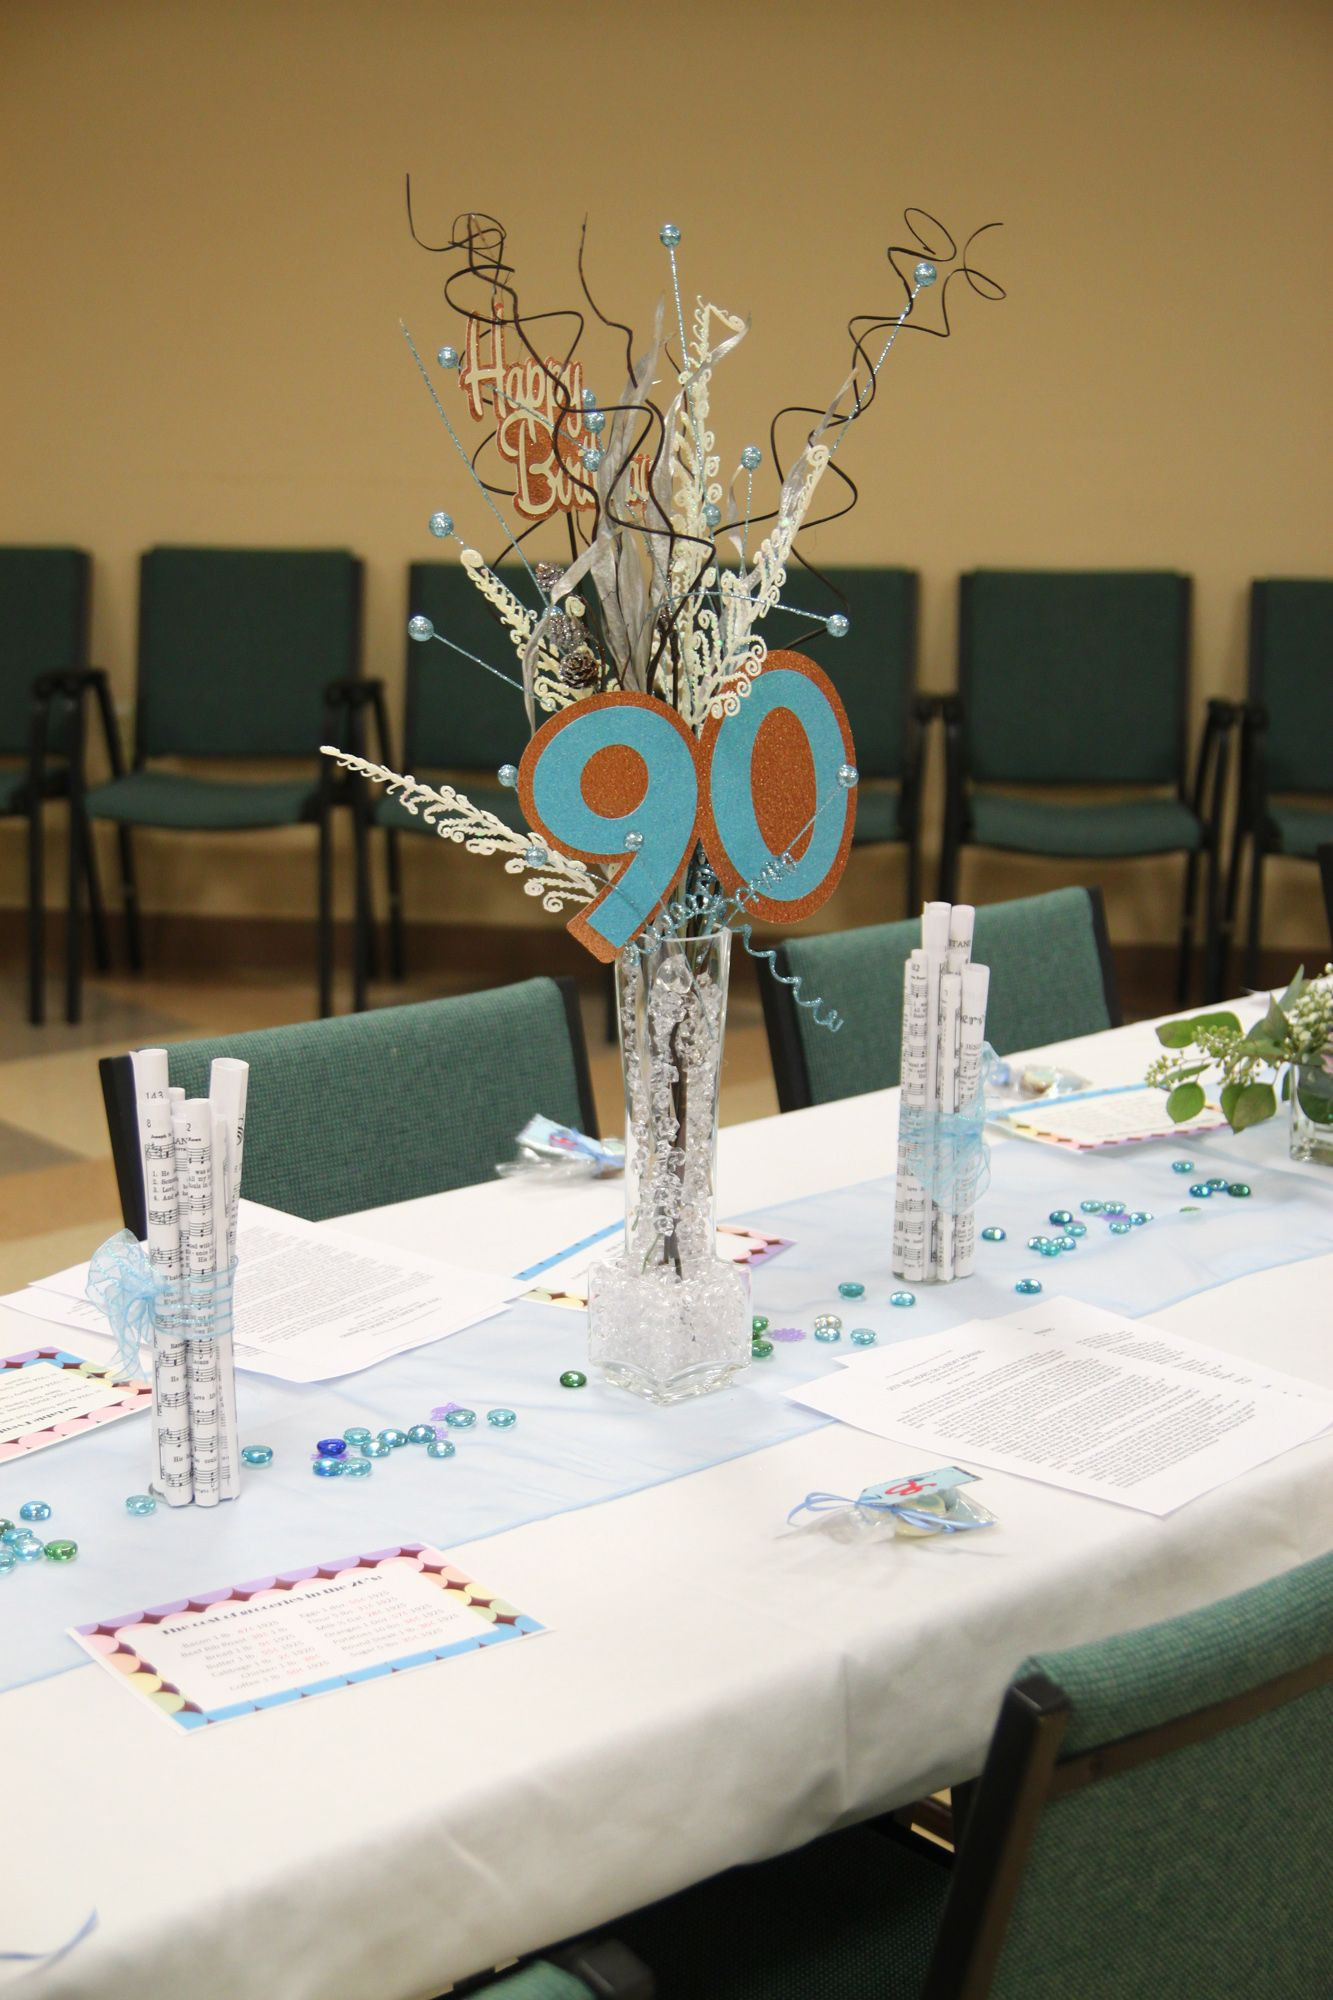 Best ideas about 90th Birthday Decorations . Save or Pin Centerpieces for Mom s 90th birthday Now.